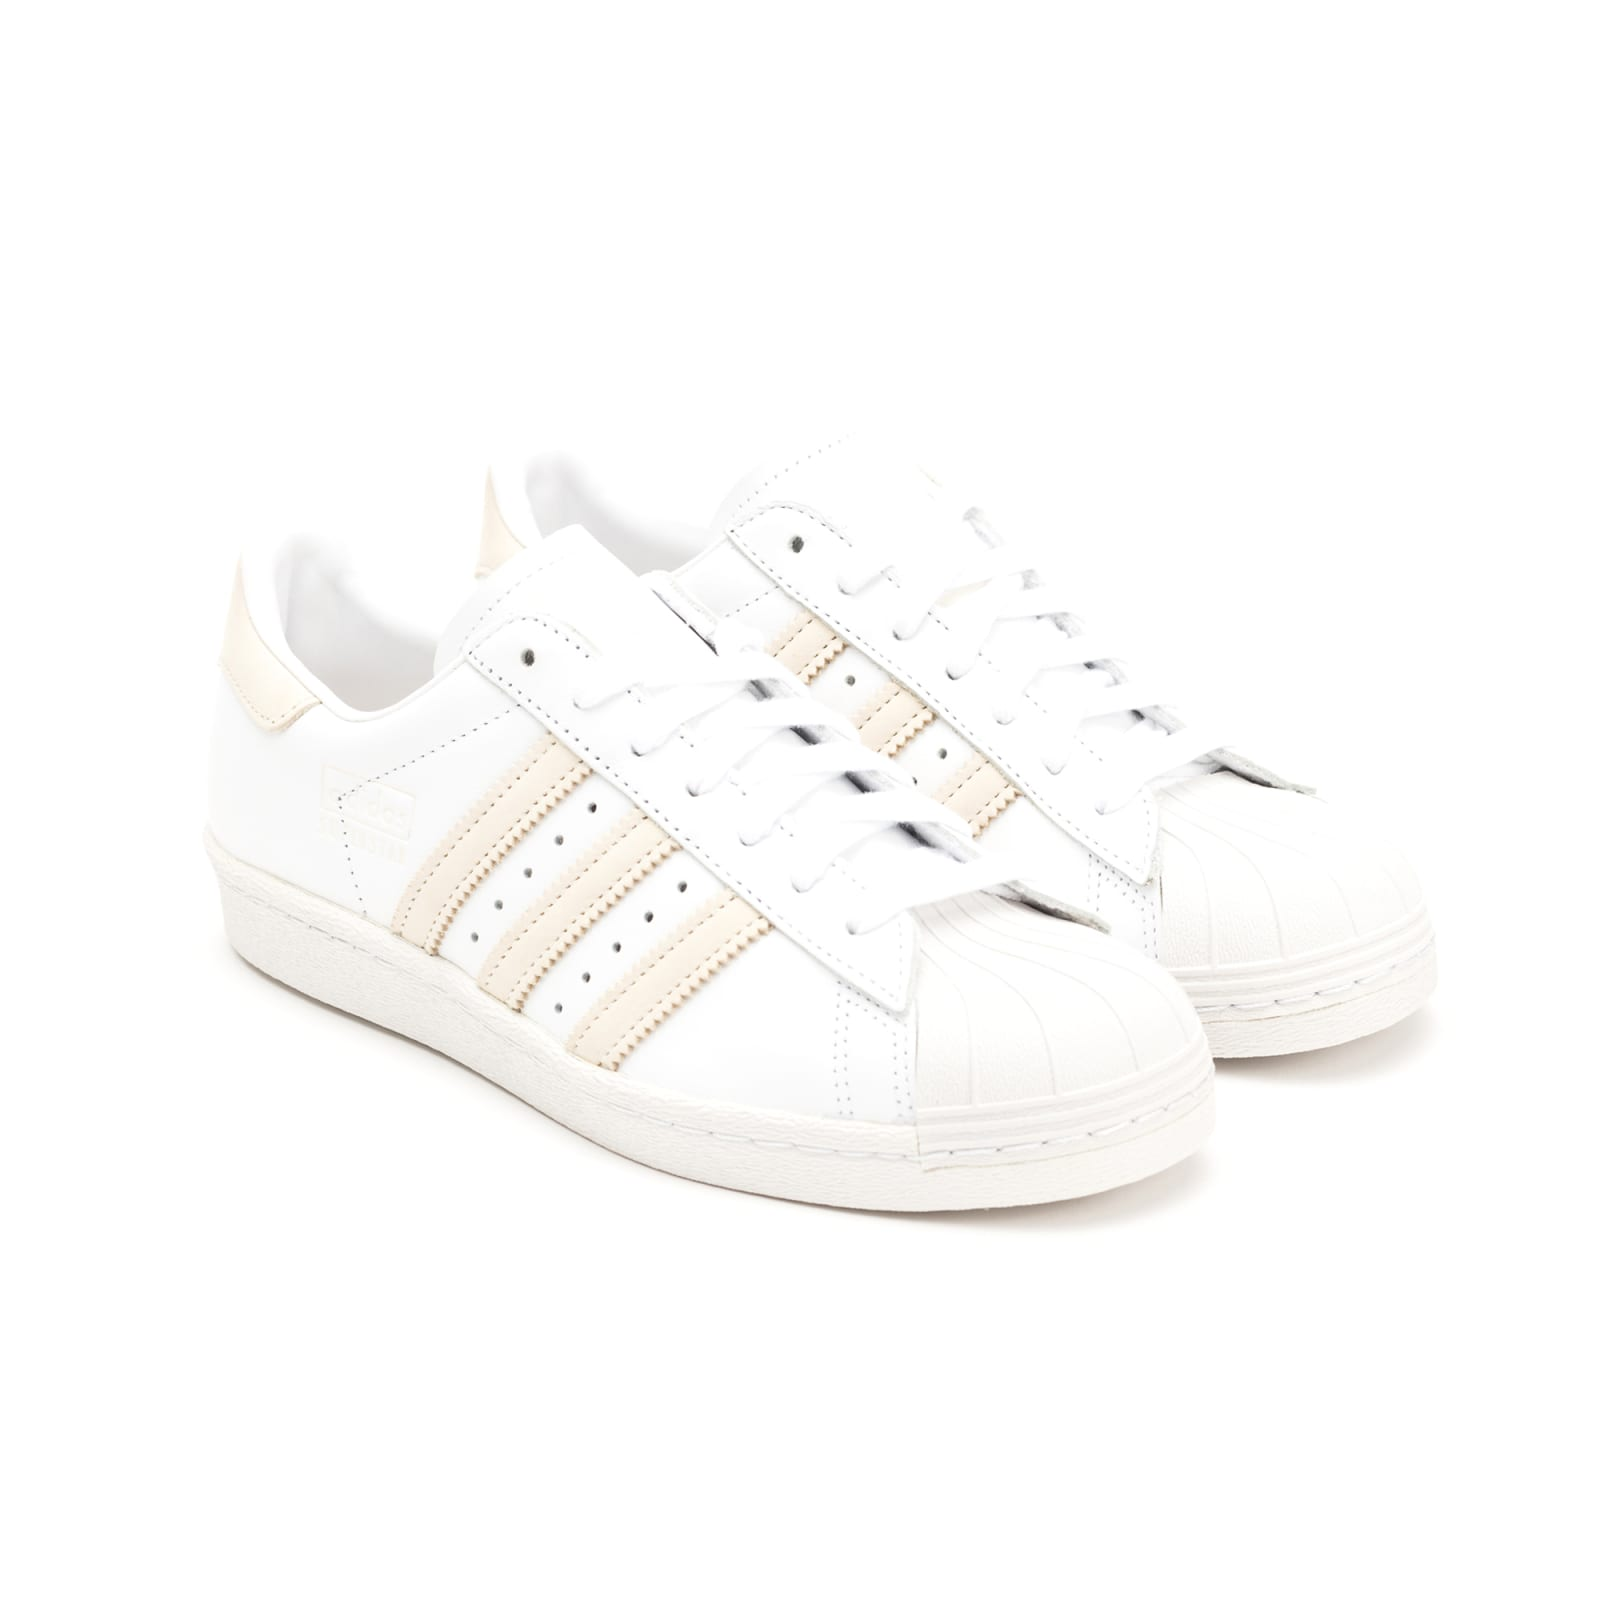 Sneakers Superstar Adidas 80's Superstar Adidas Sneakers Leather Adidas 80's 80's Superstar Leather Leather 2EIWHDY9